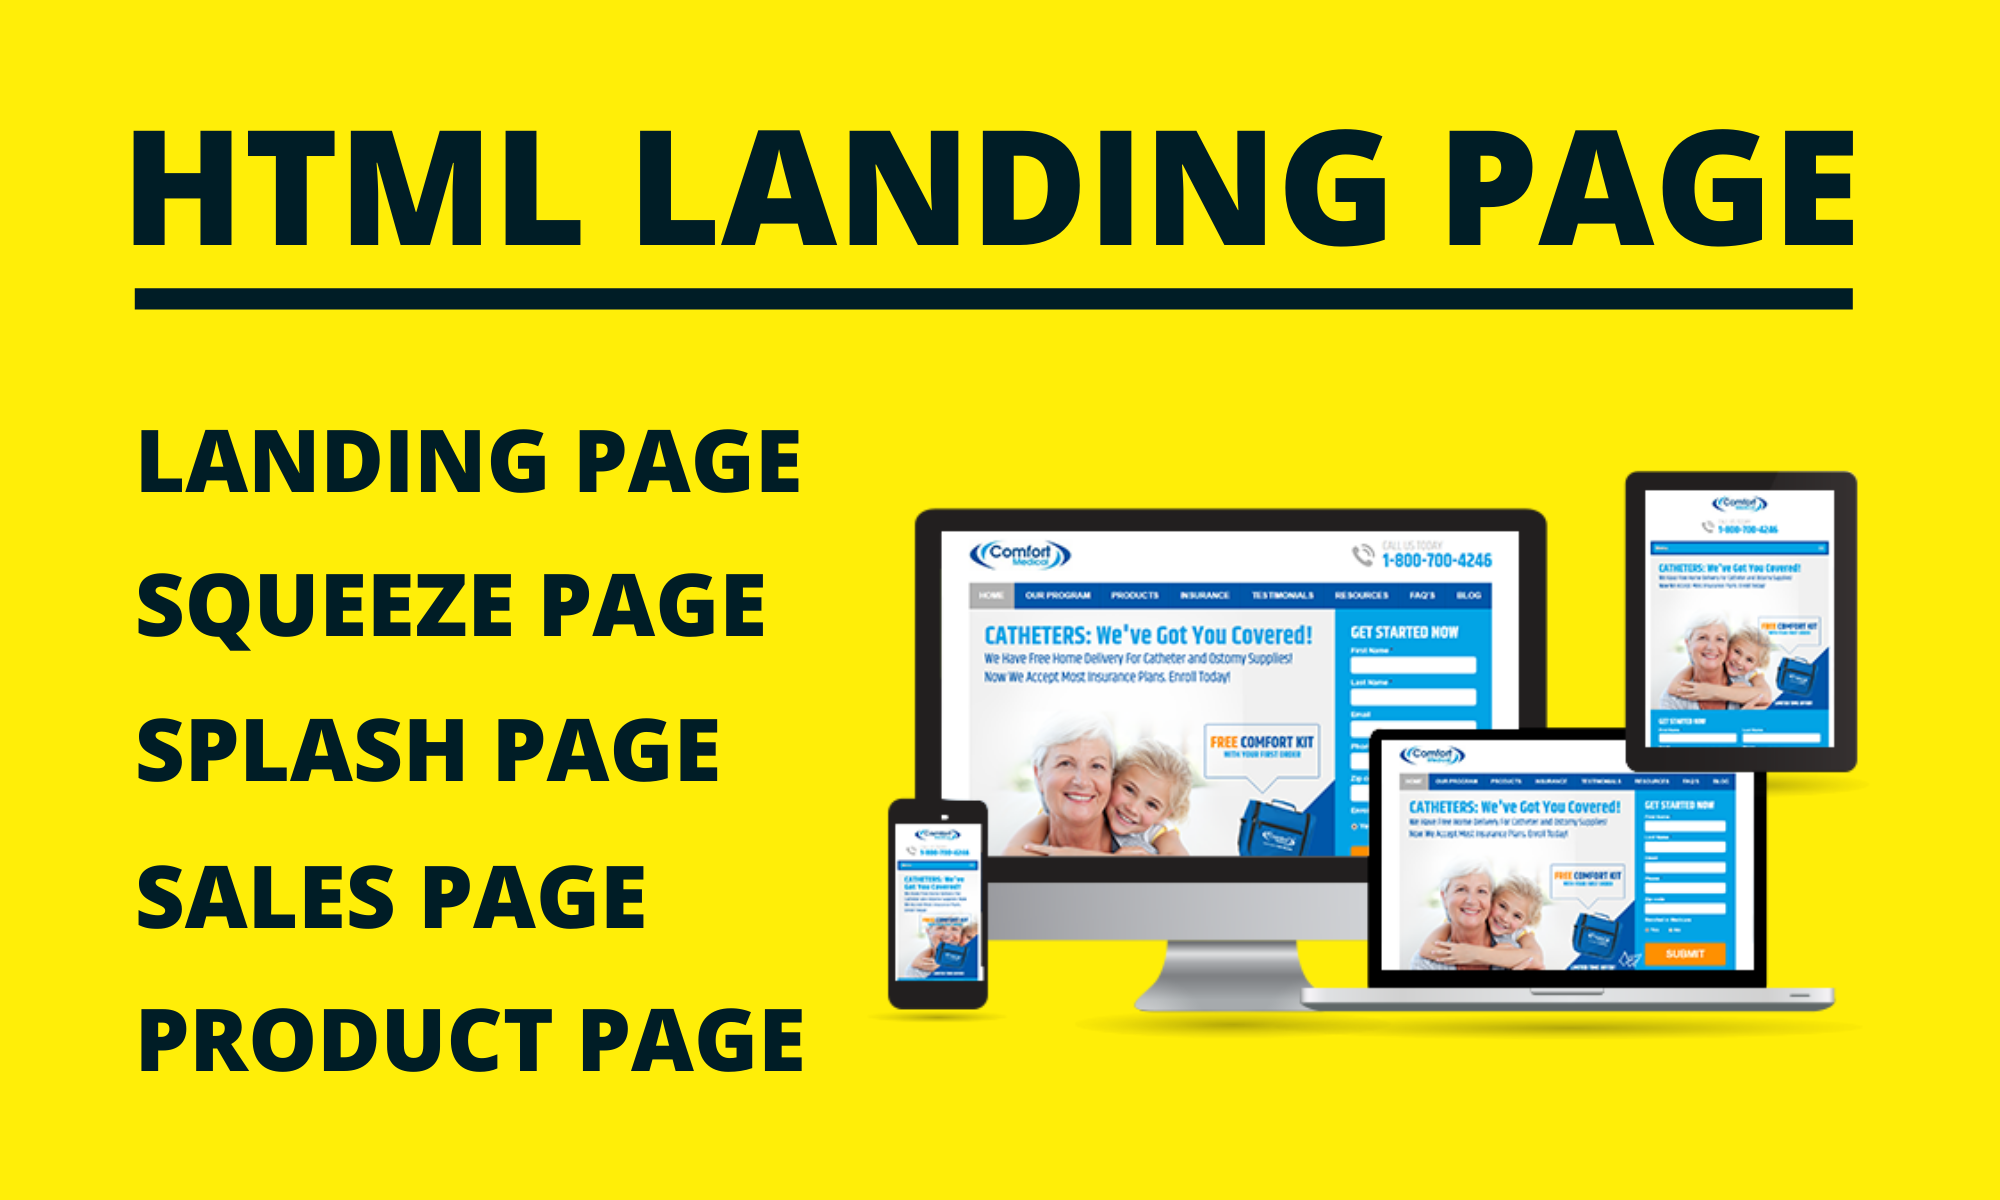 Responsive html landing page design,  squeeze page,  sales page,  product page,  splash page design